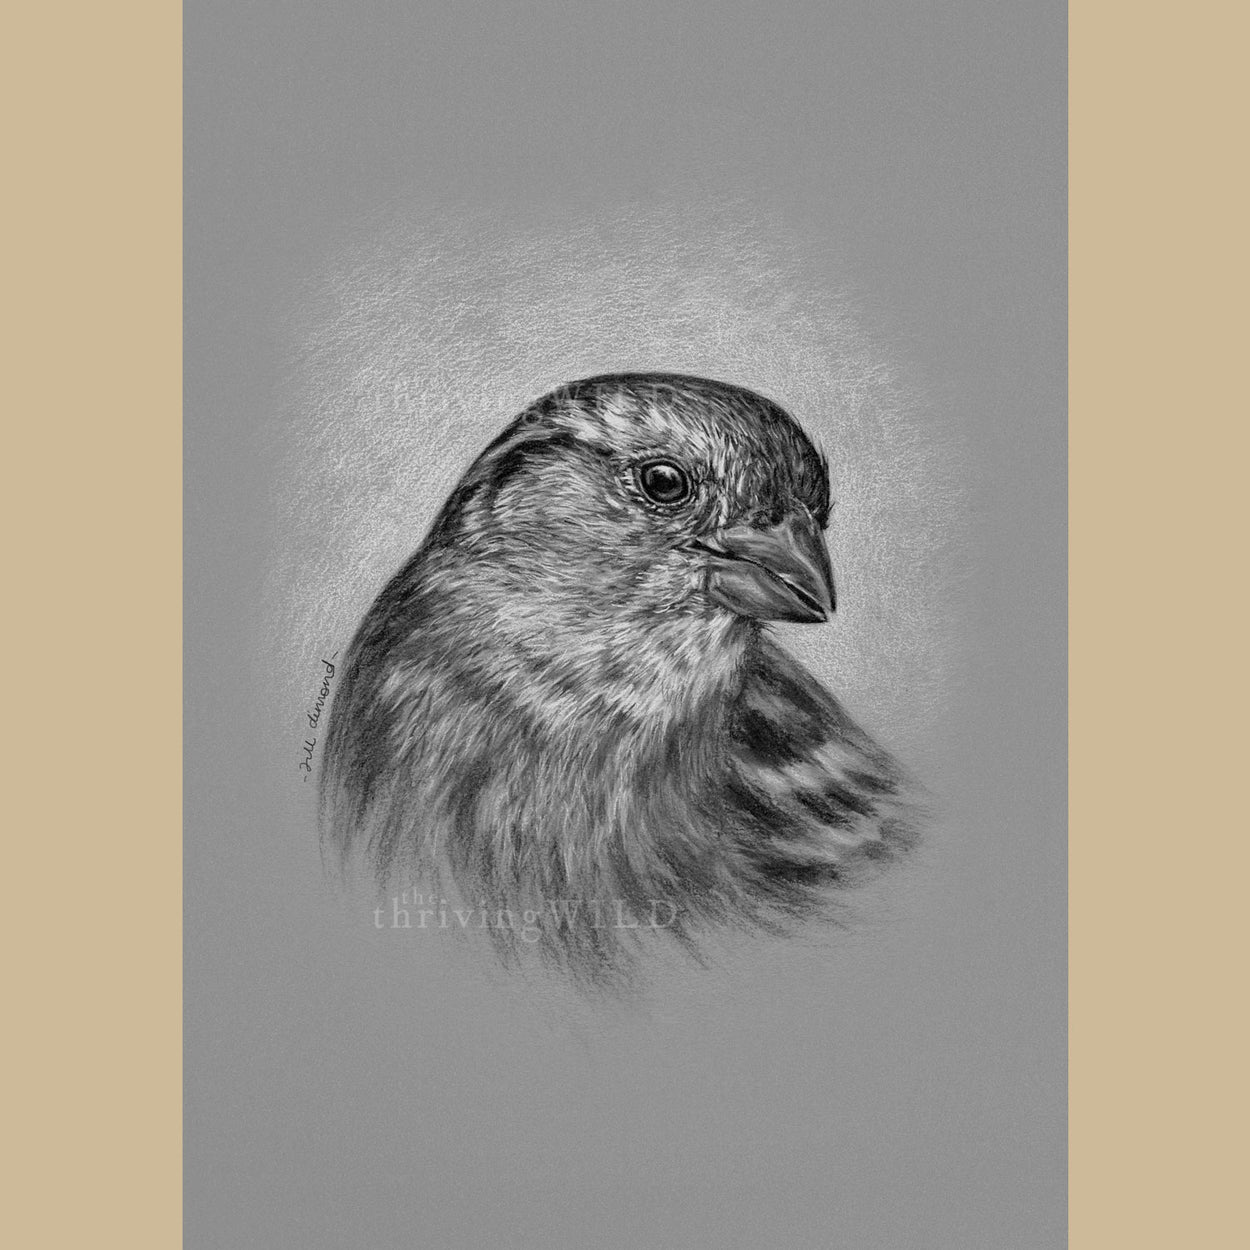 Female House Sparrow Charcoal Drawing - The Thriving Wild - Jill Dimond